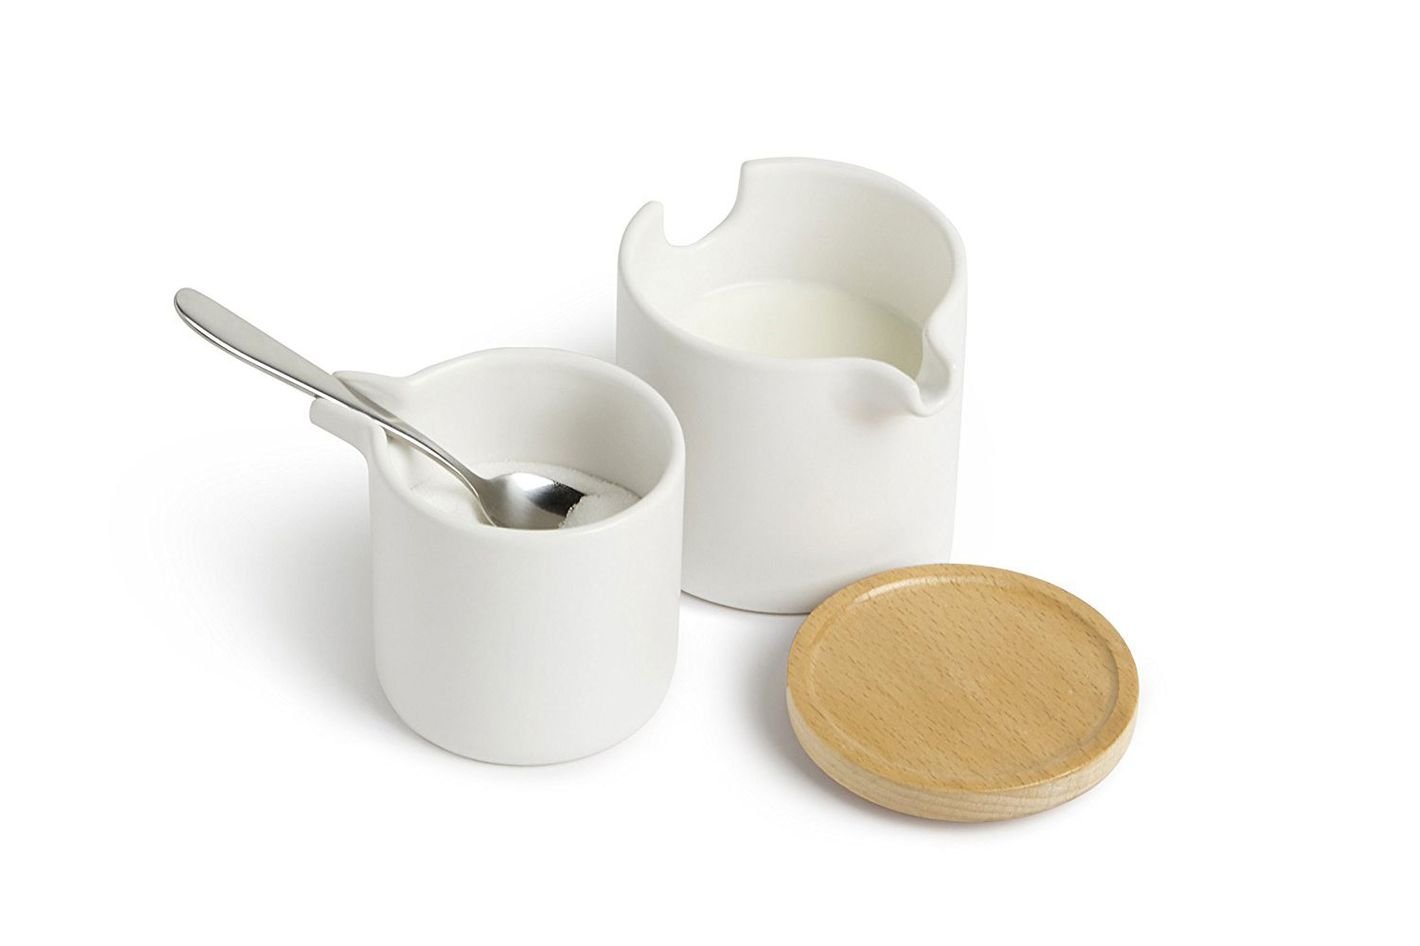 Umbra Savore Cream and Sugar Set